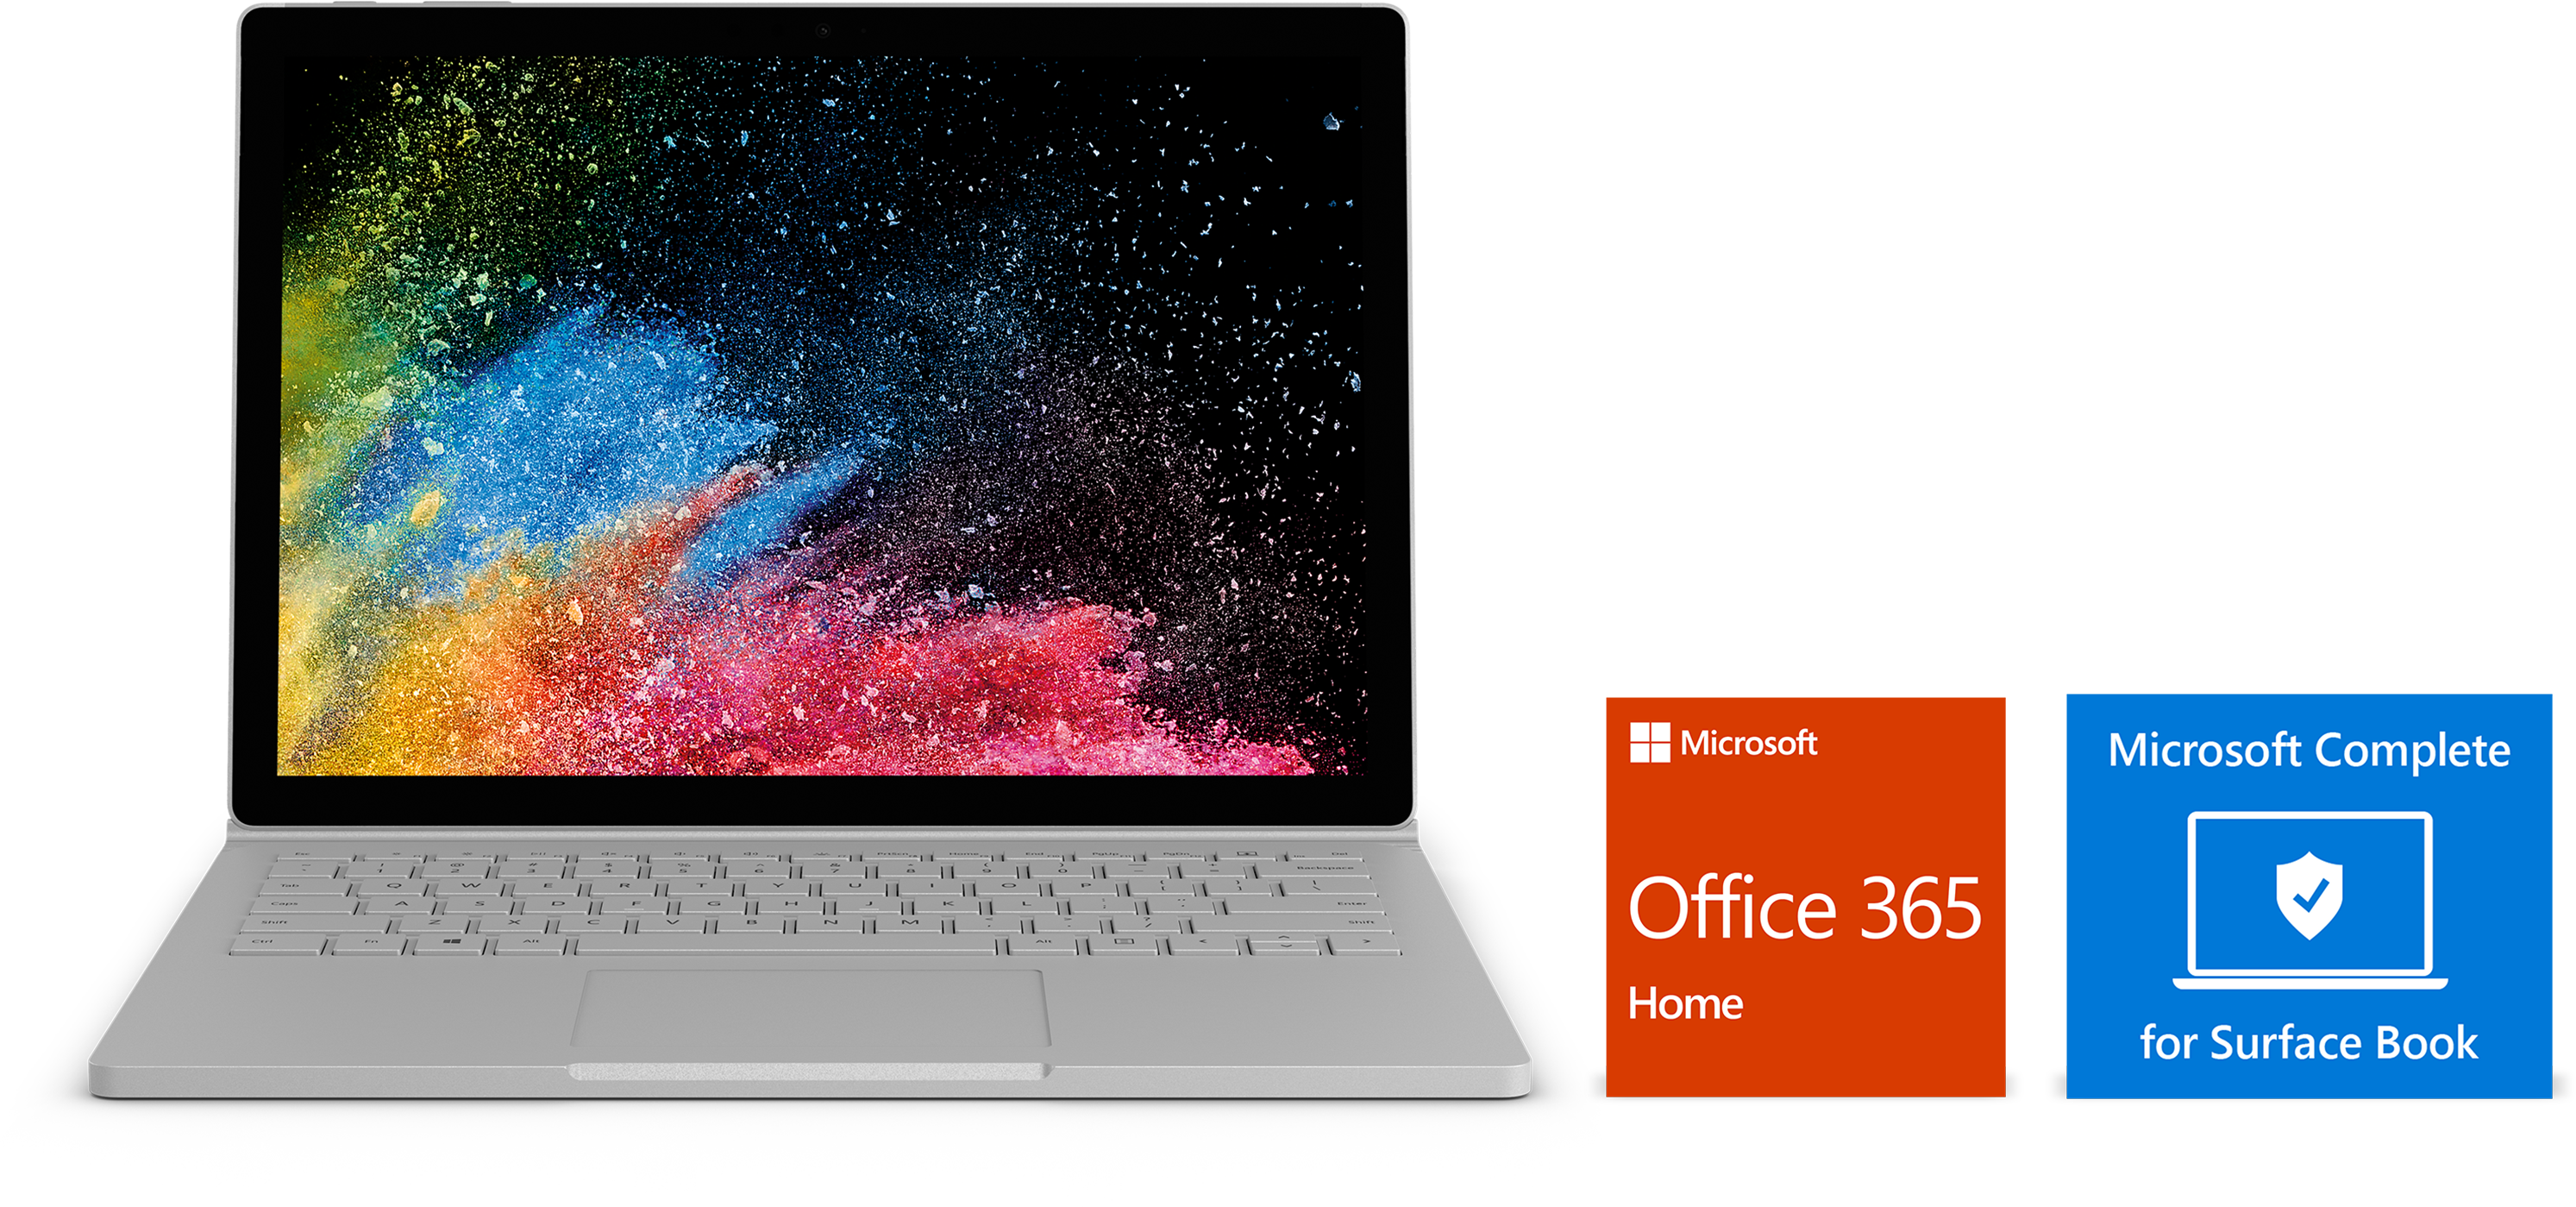 Surface Book 2, sleeve, Office 365 and Microsoft Complete tile